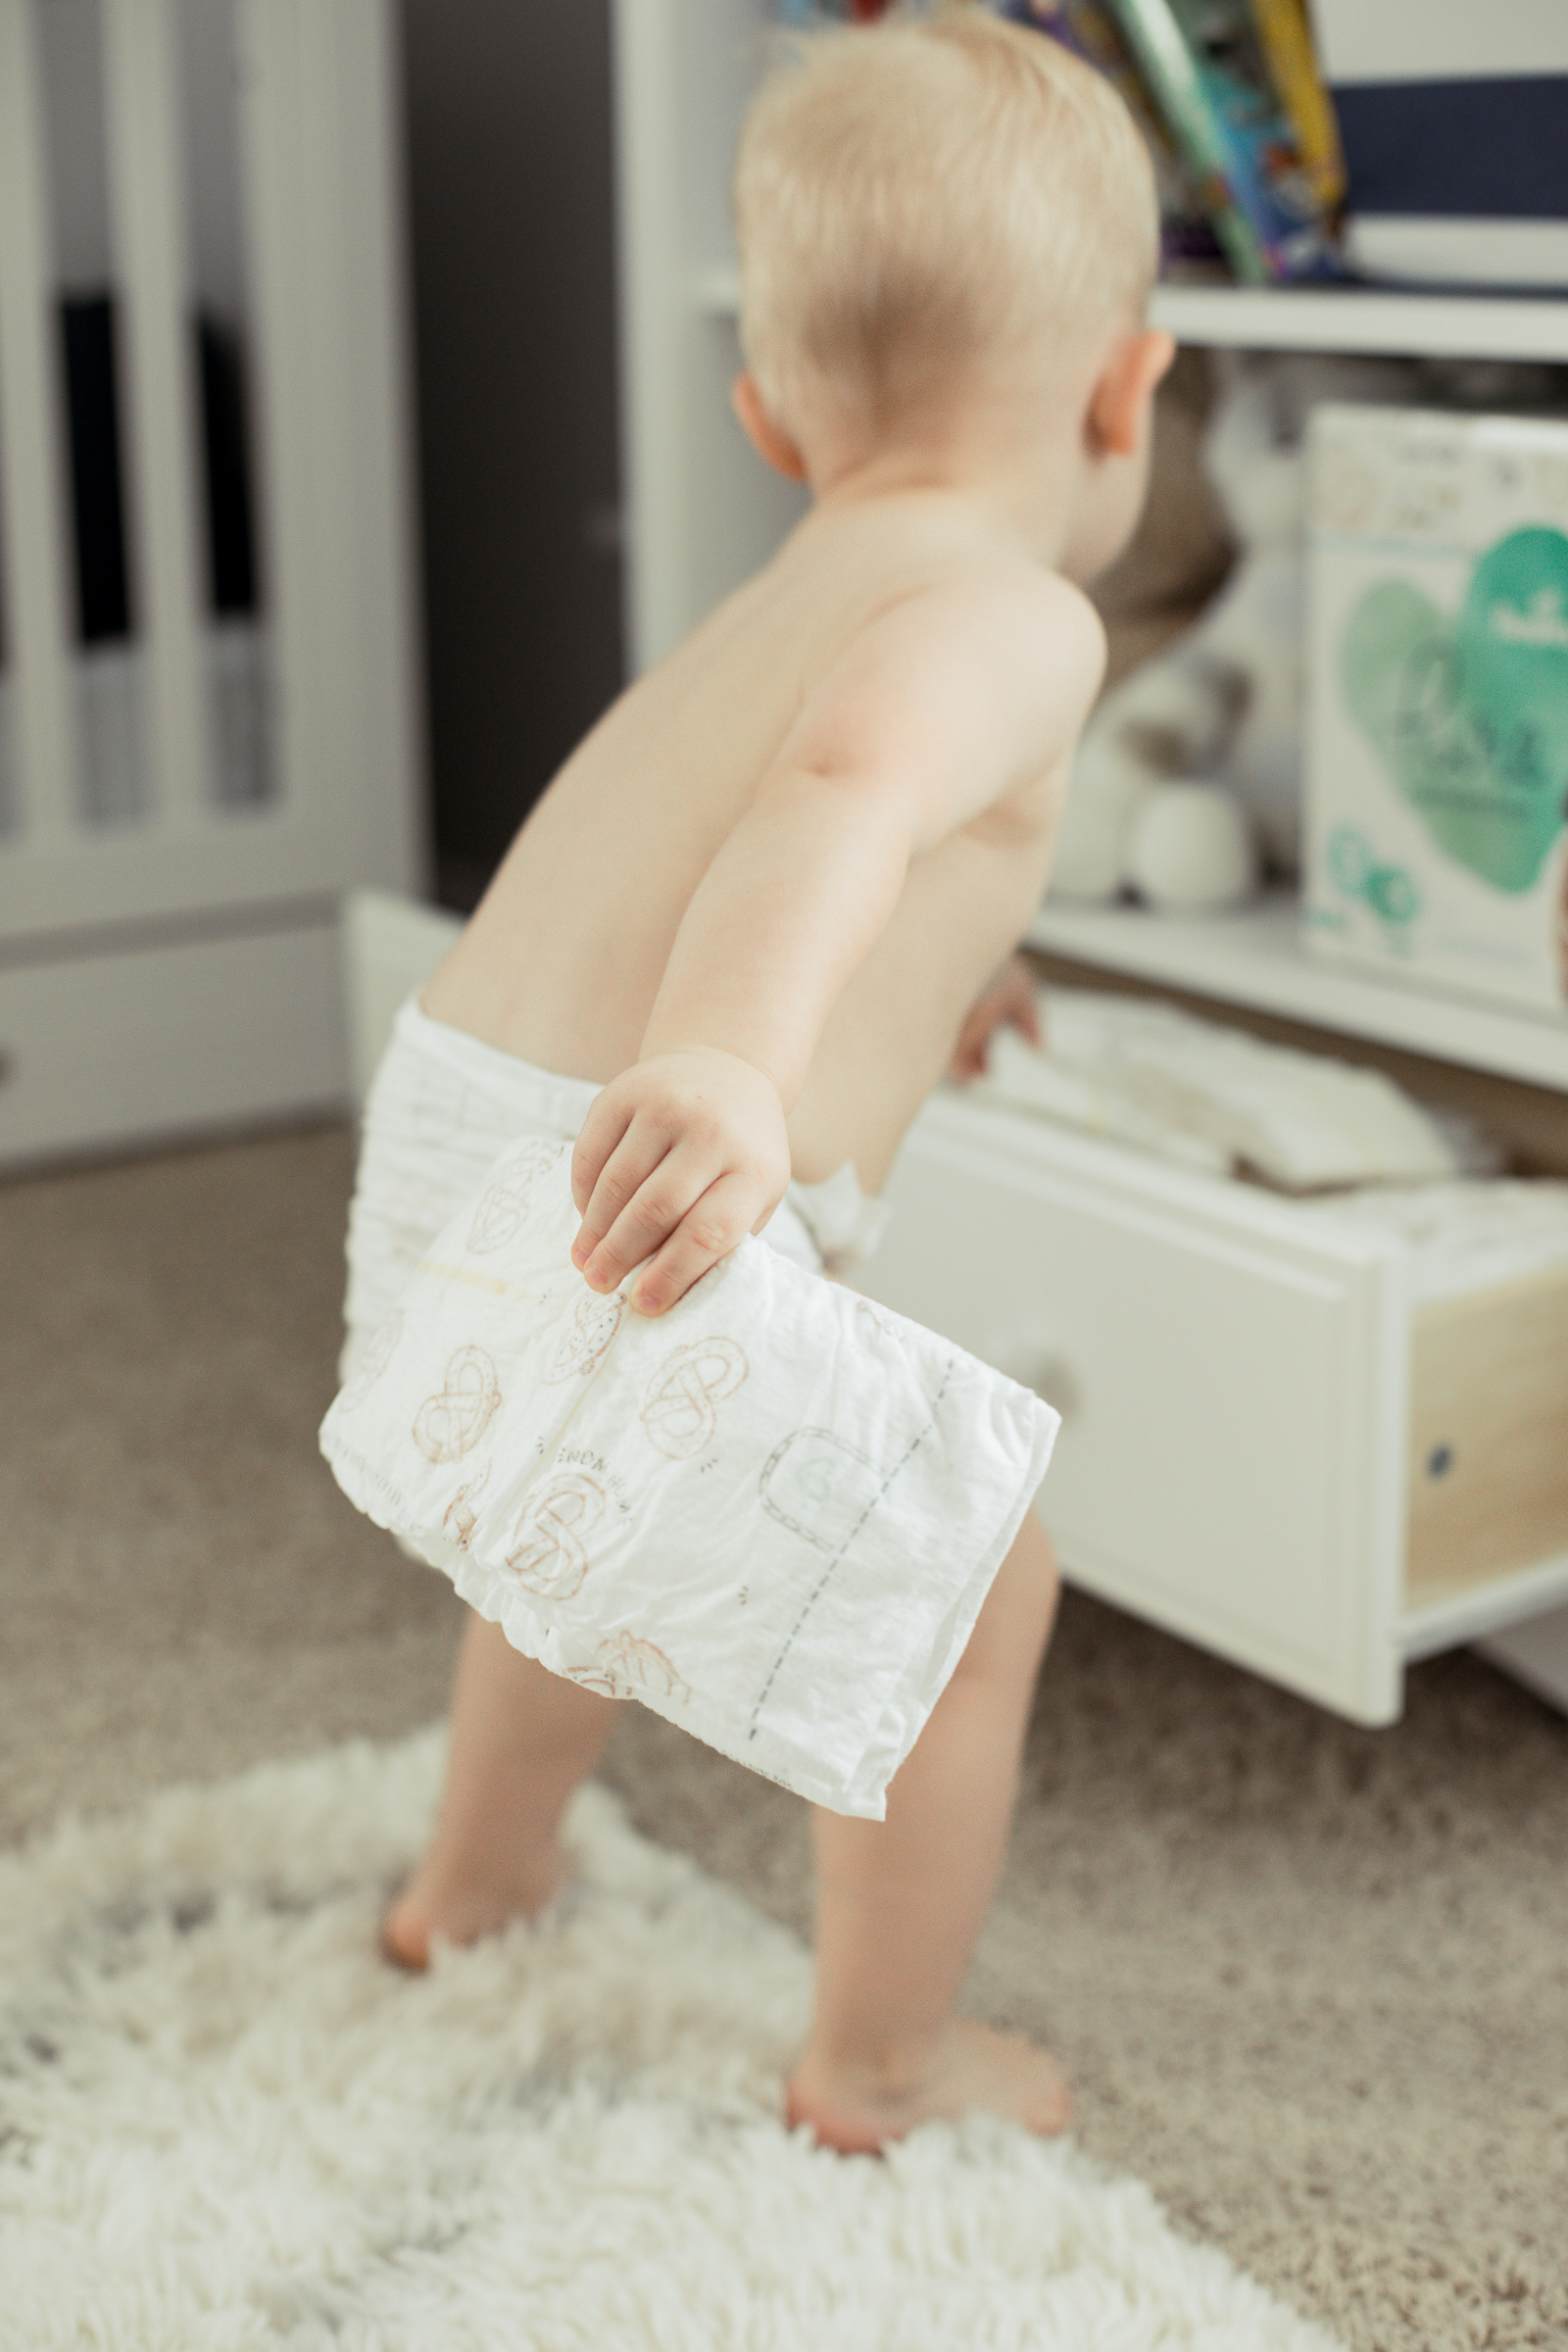 Houston lifestyle blogger Uptown with Elly Brown shares 10 Diaper Hacks that will make your life a little bit easier! See more here!